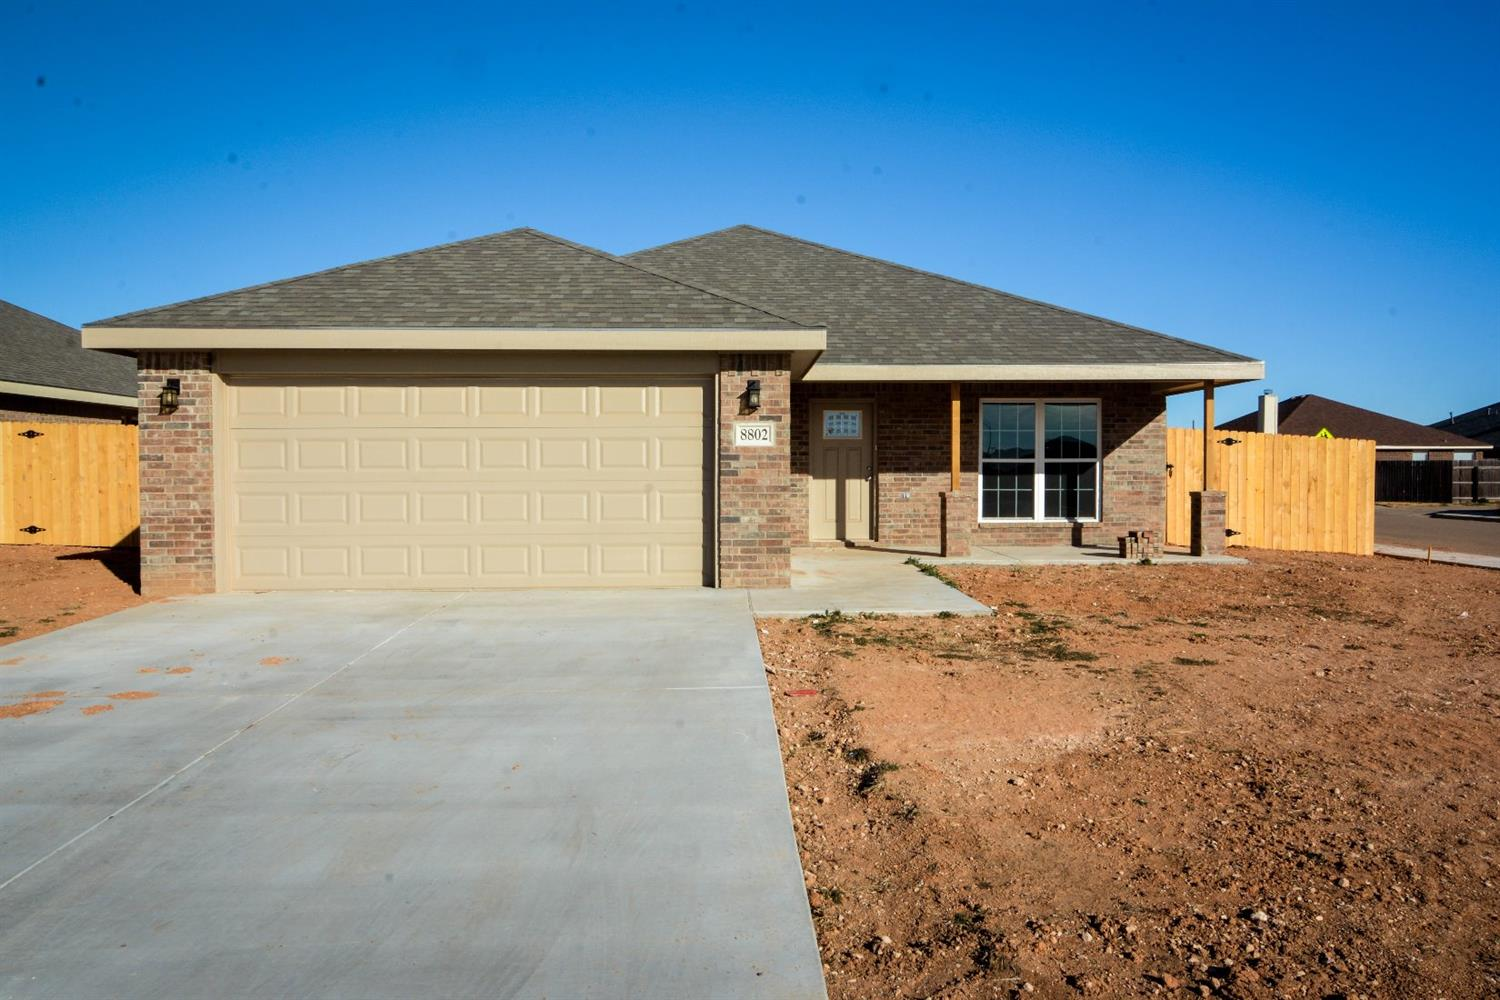 8816 16th Street, Lubbock in Lubbock County, TX 79416 Home for Sale